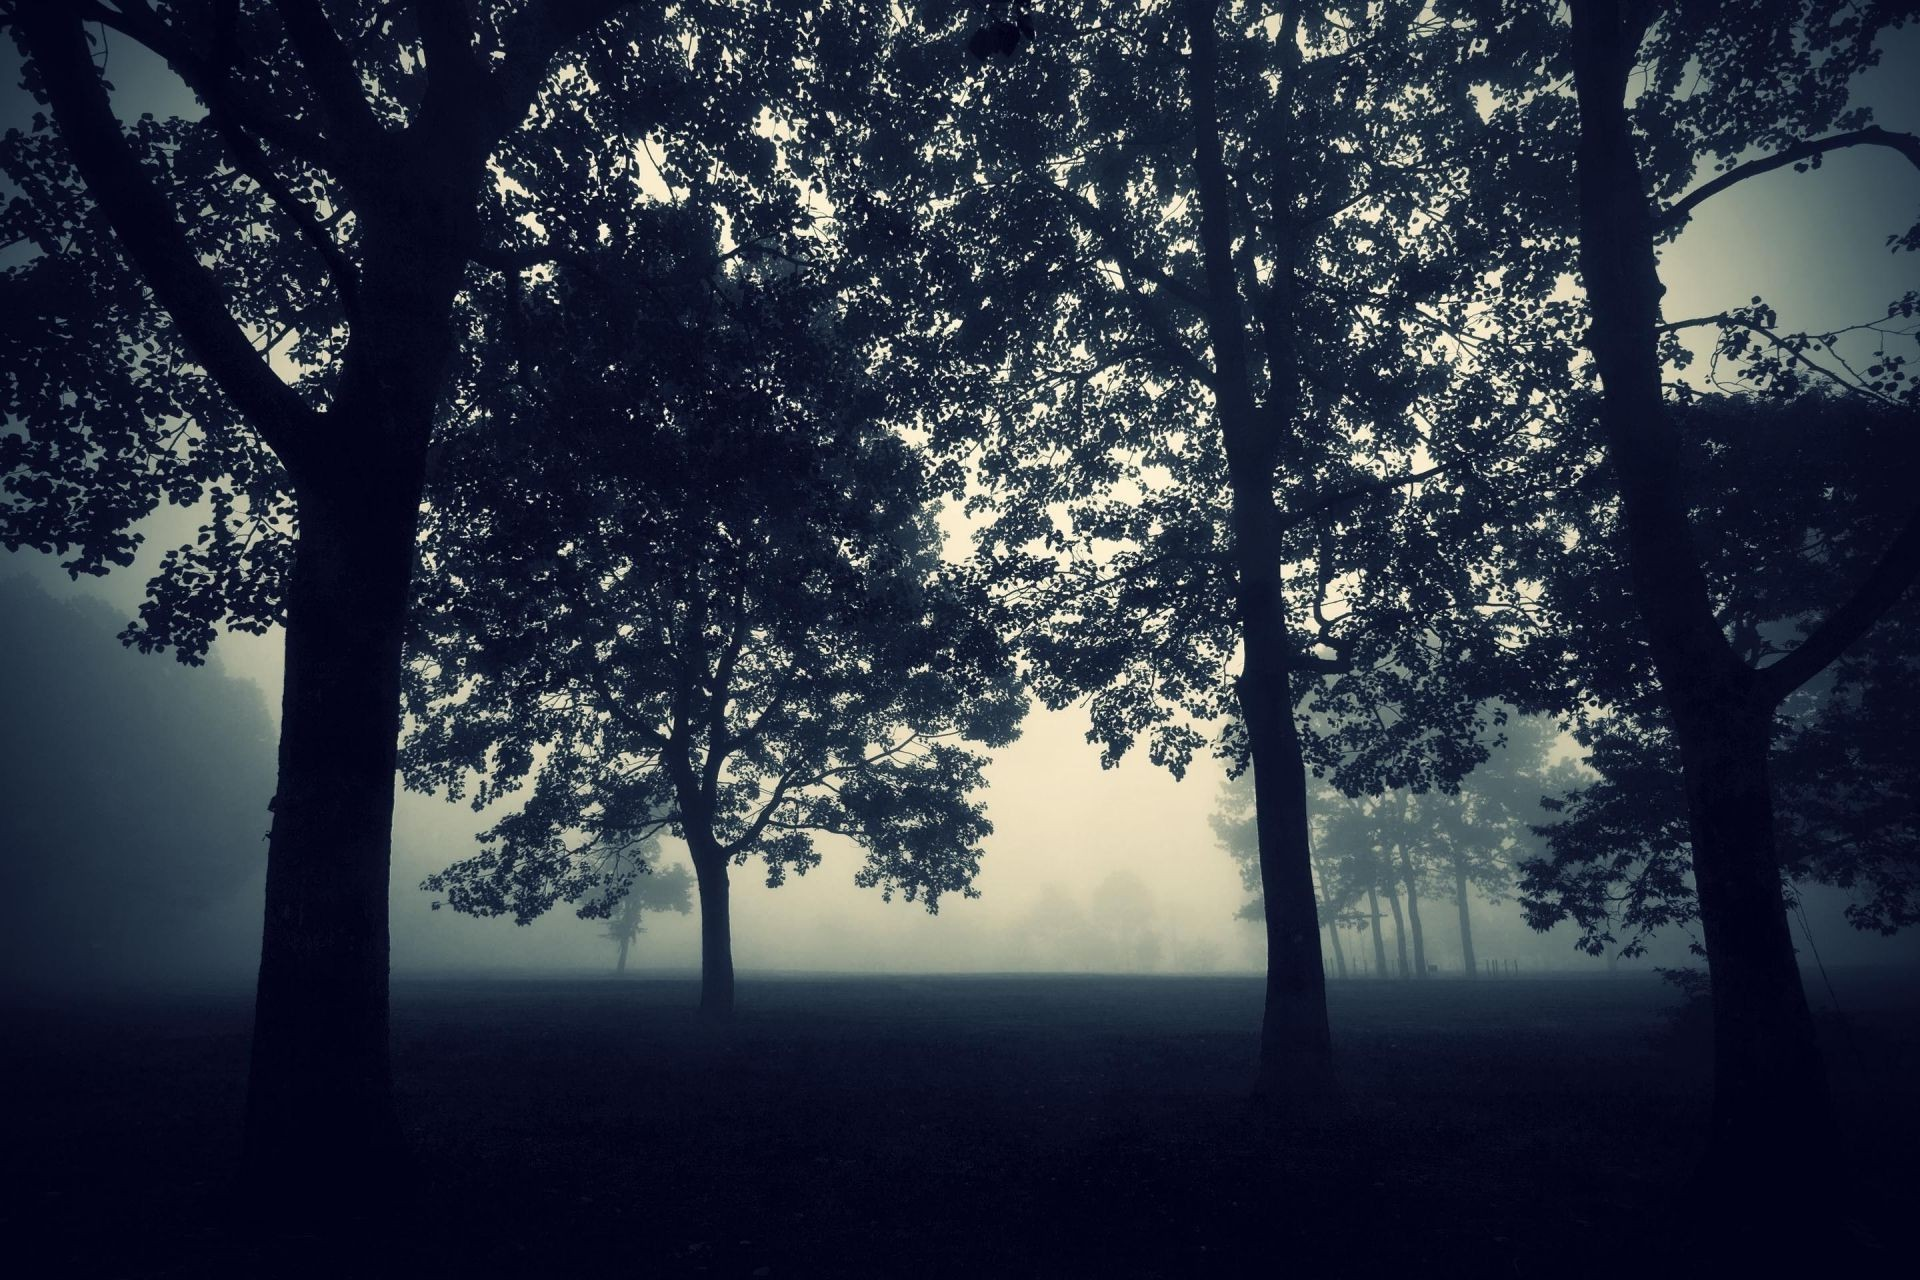 evening the Trees the fog the dark the twilight nature mysticism